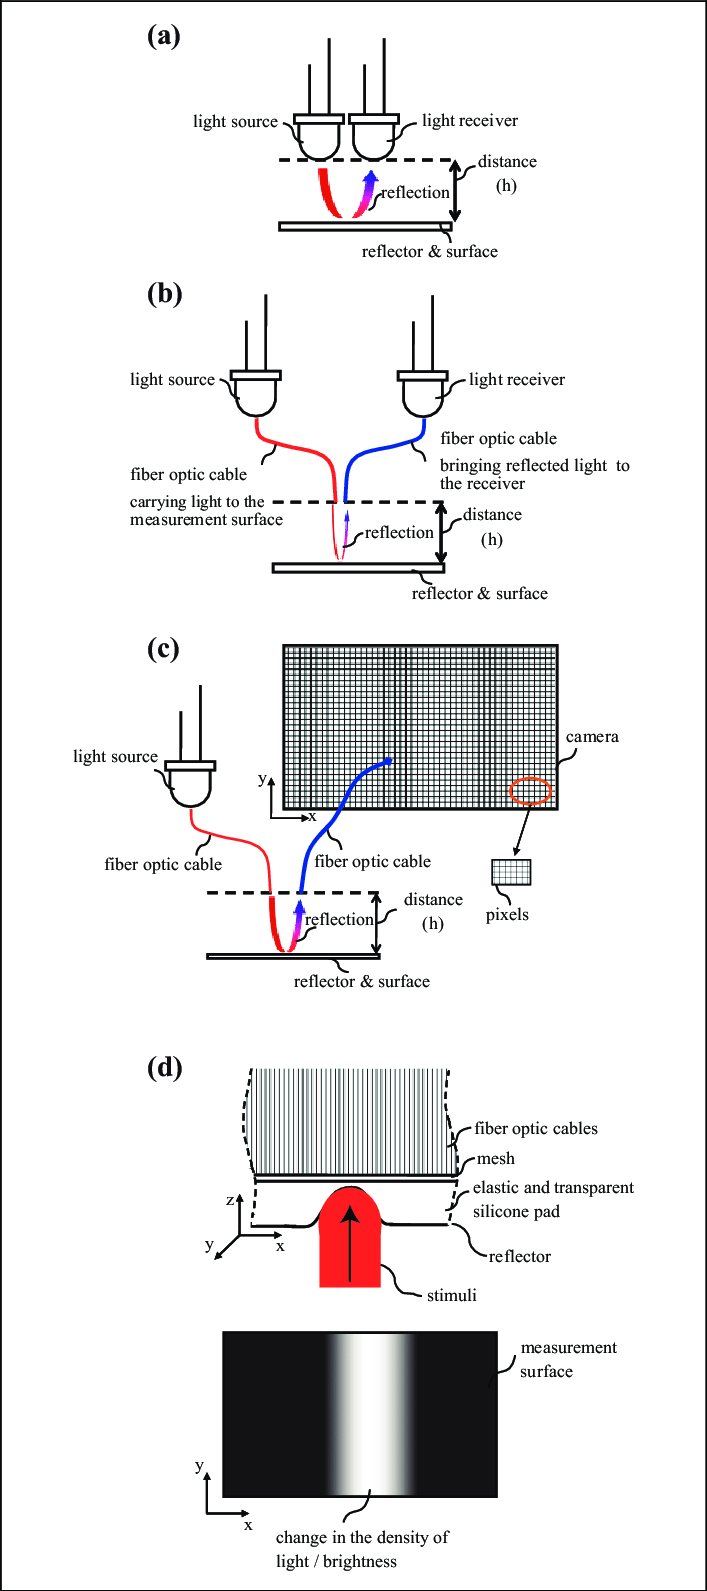 hight resolution of change in the light intensity illuminance when there is a stimulus download scientific diagram